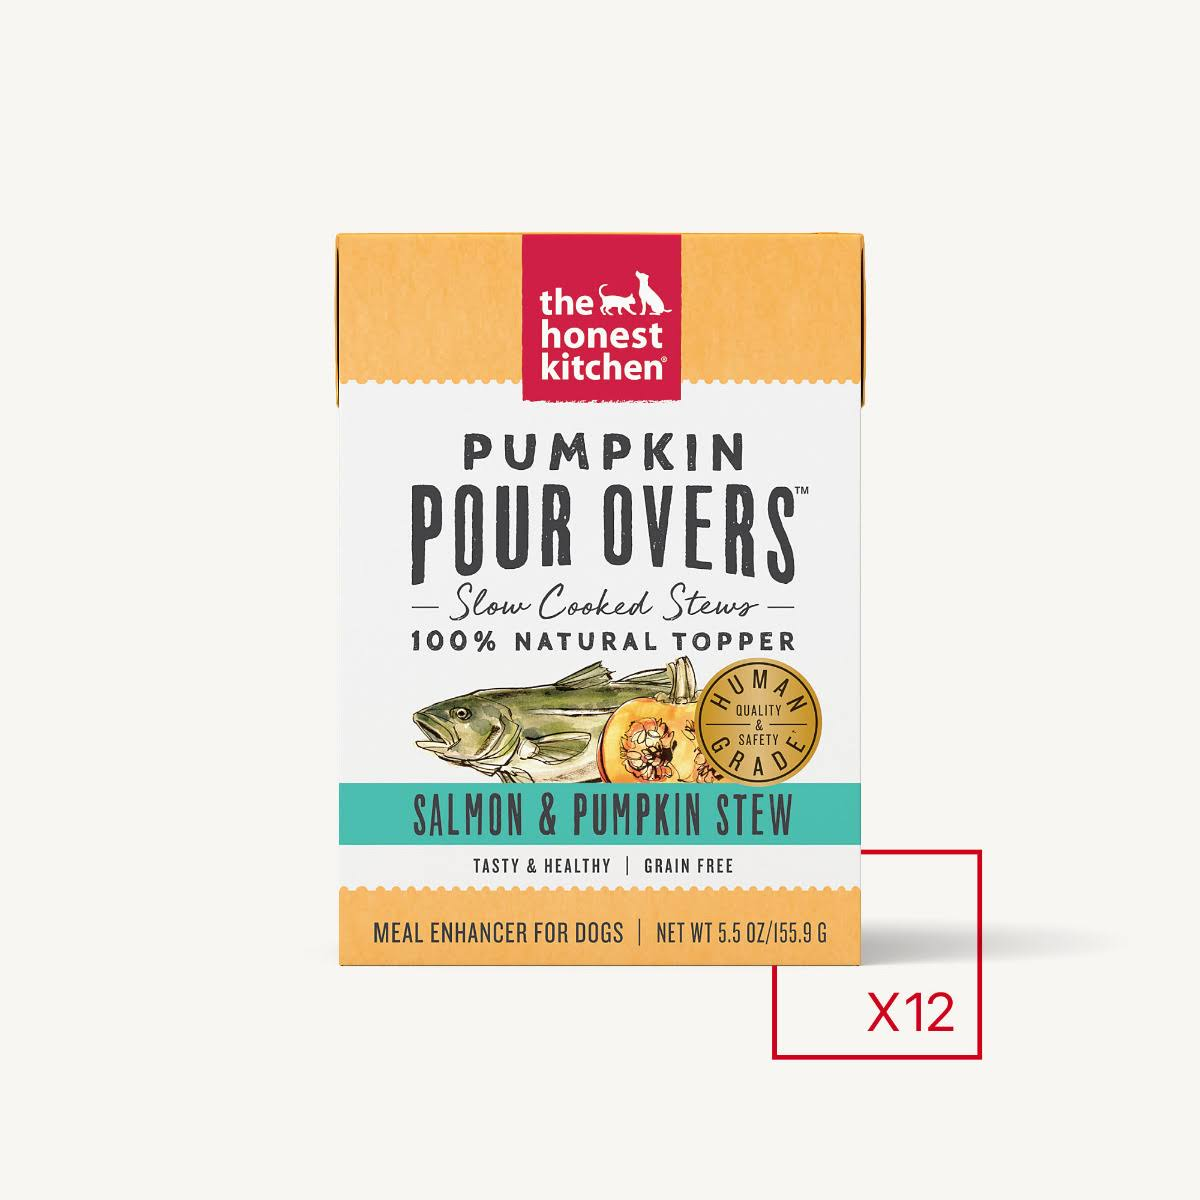 The Honest Kitchen Pumpkin Pour Overs Salmon & Pumpkin Stew, 5.5oz